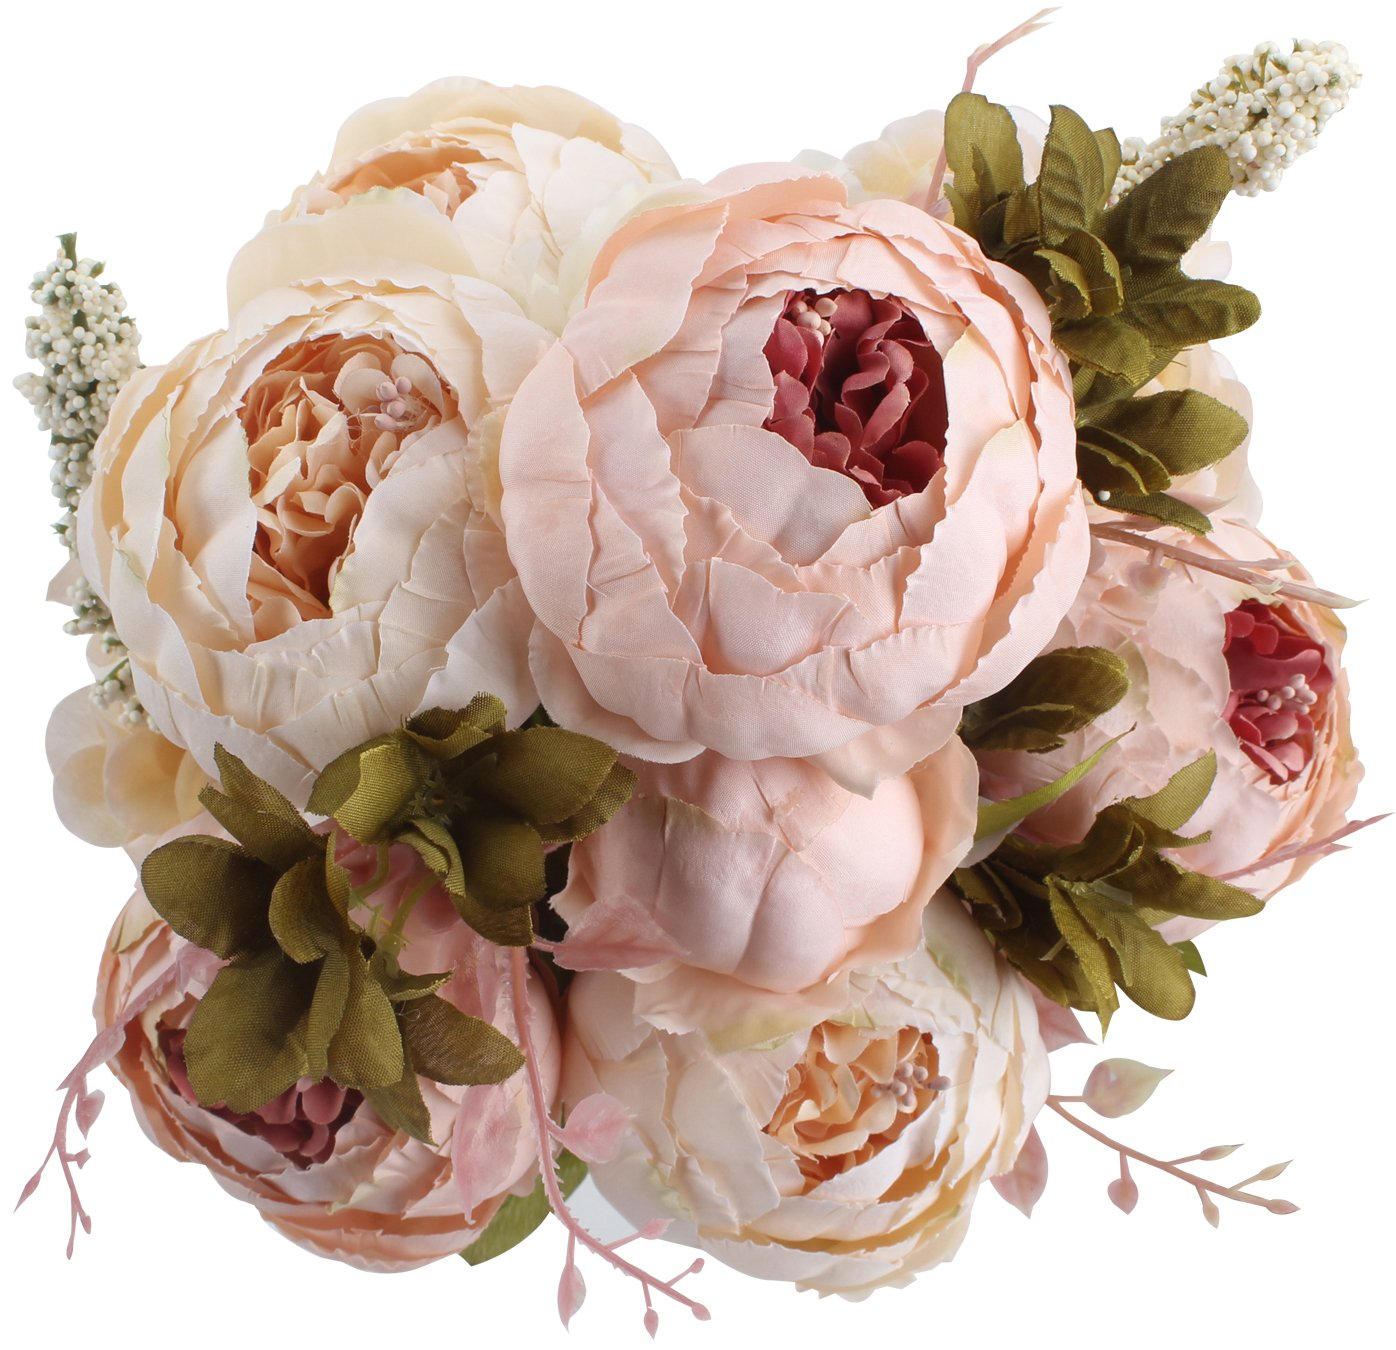 Amazon duovlo fake flowers vintage artificial peony silk amazon duovlo fake flowers vintage artificial peony silk flowers wedding home decorationpack of 1 light pink home kitchen izmirmasajfo Gallery